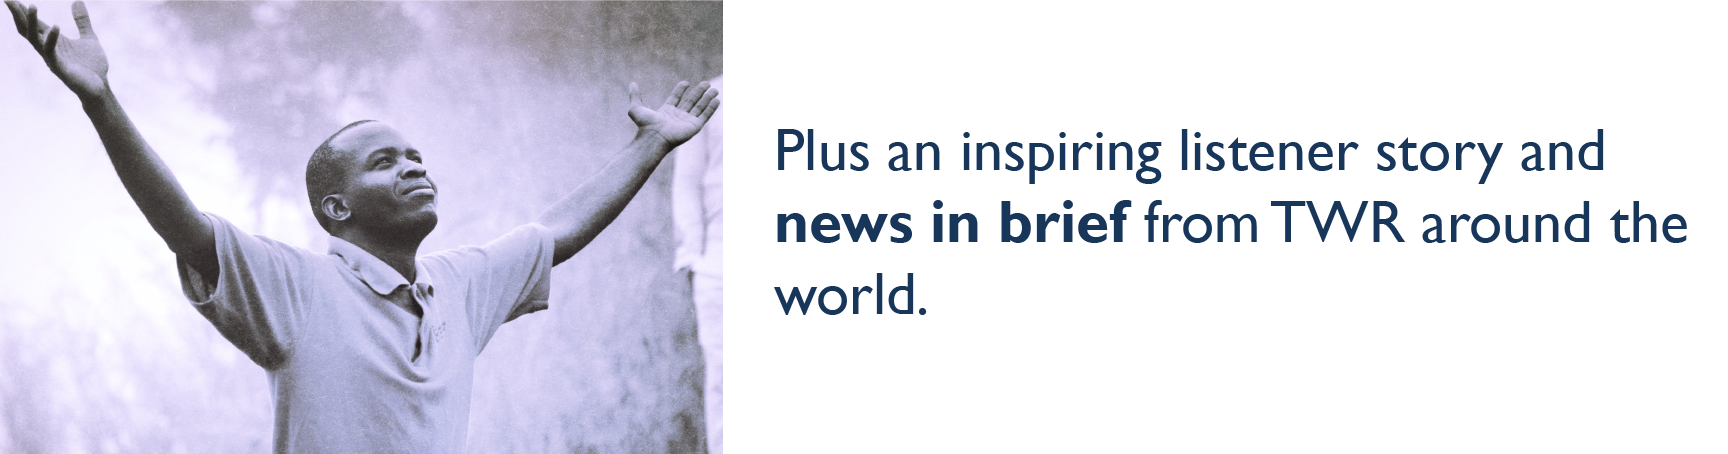 Plus an inspiring listener story and news in brief from TWR around the world.